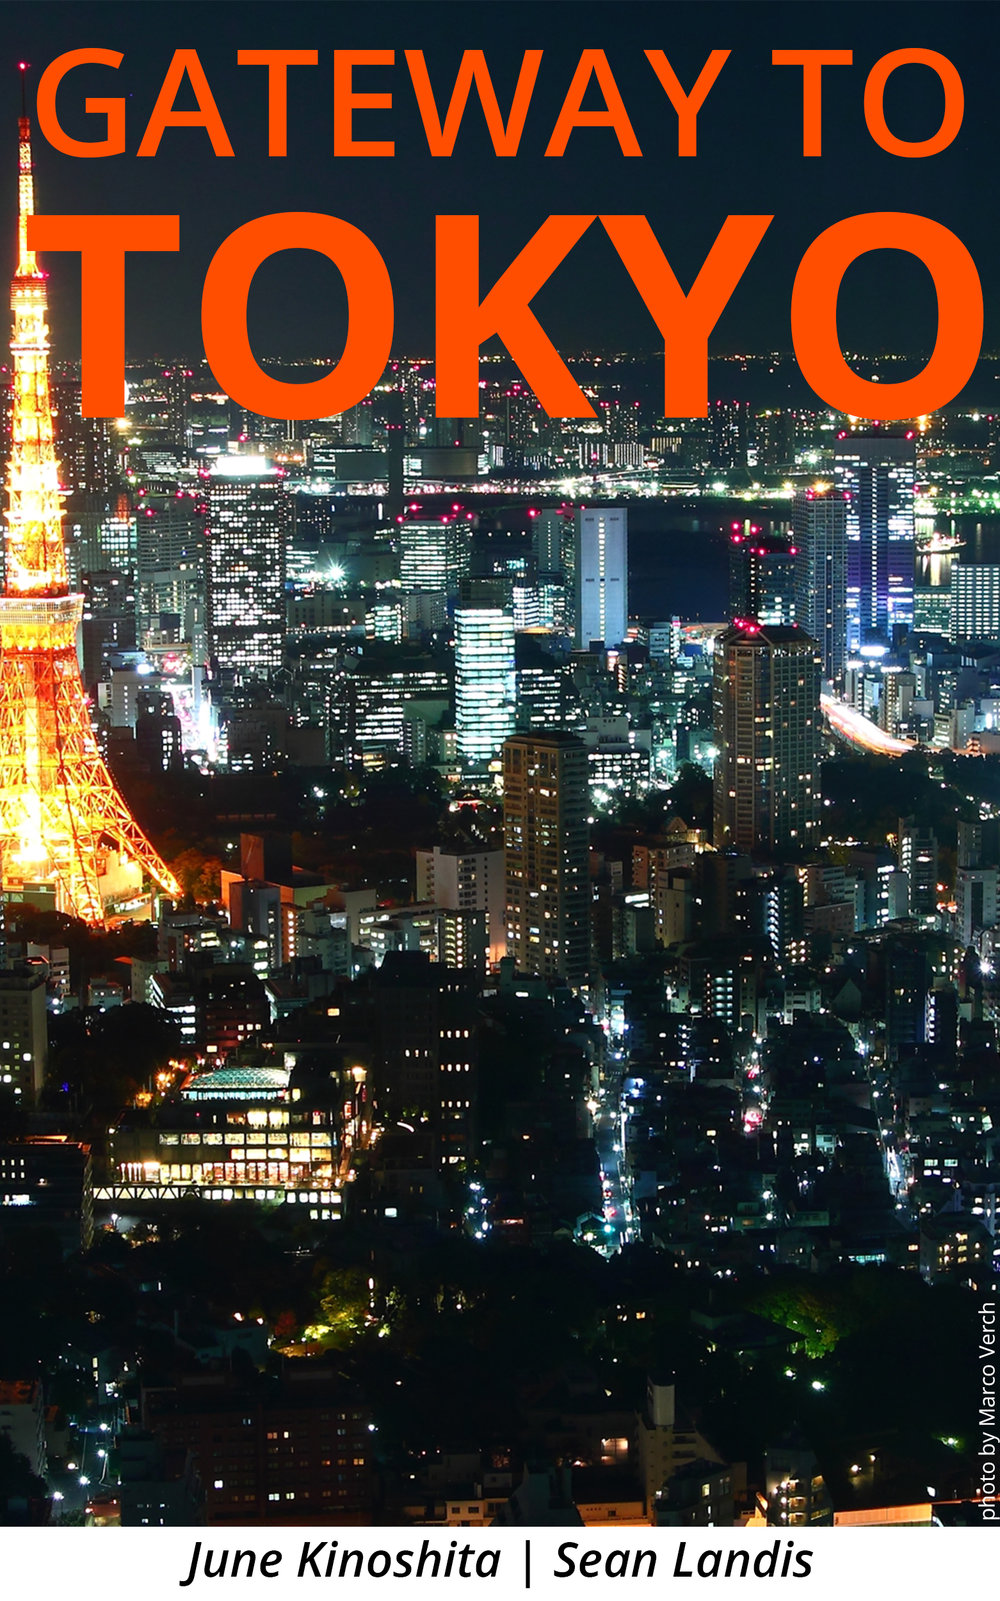 Gateway to Toyko's Cover. Image by Marco Verch